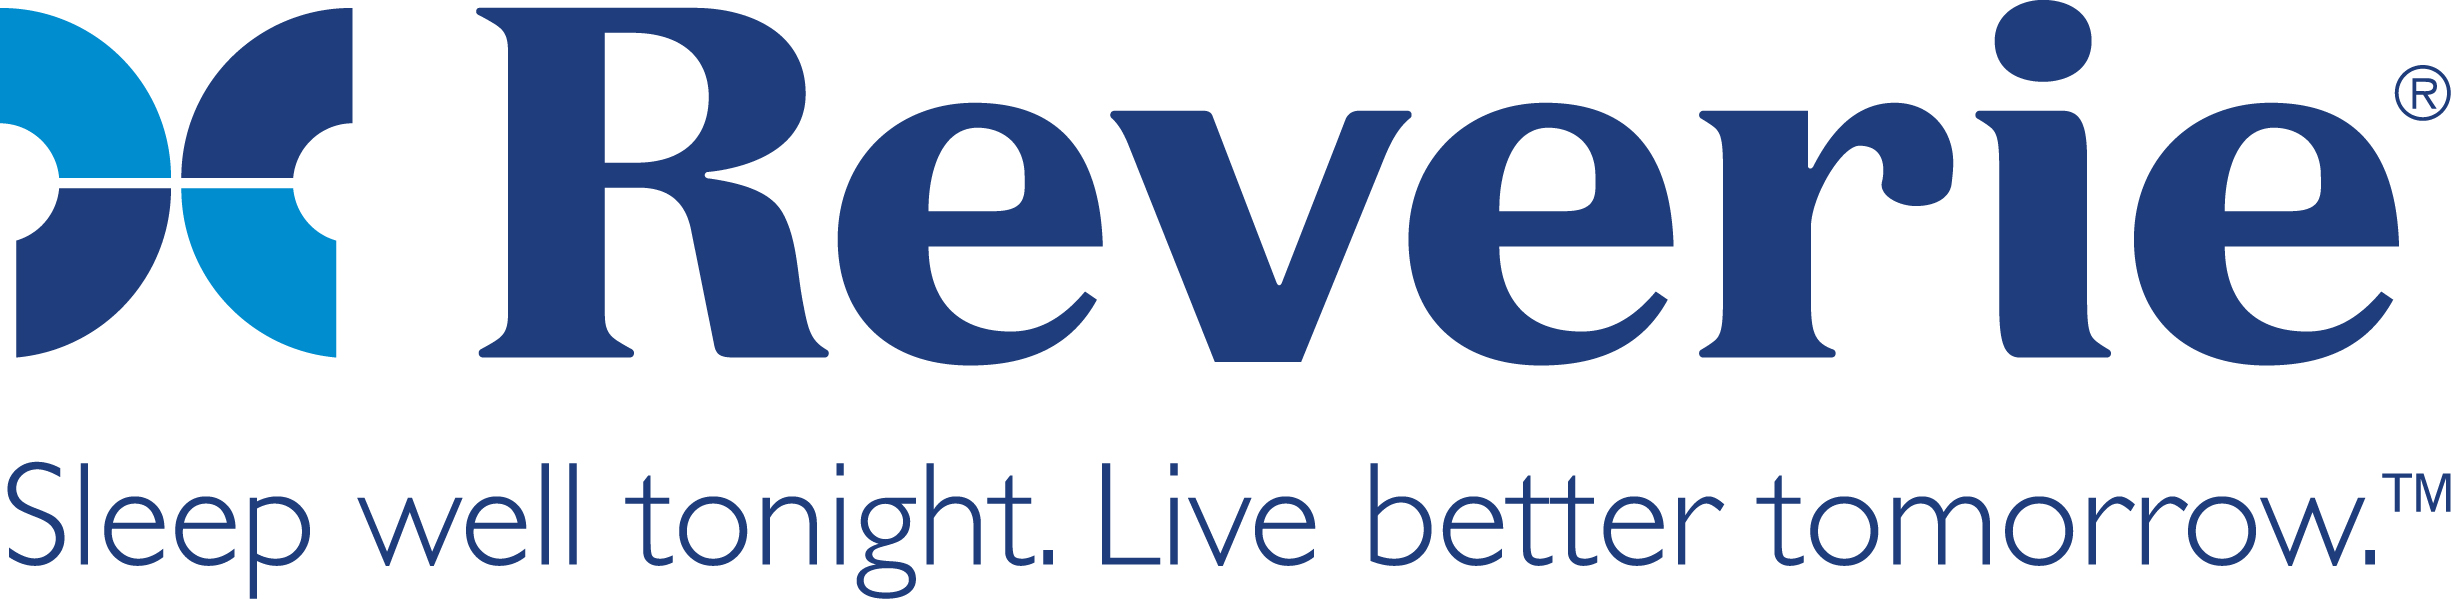 reverie-logo-full-color.jpg